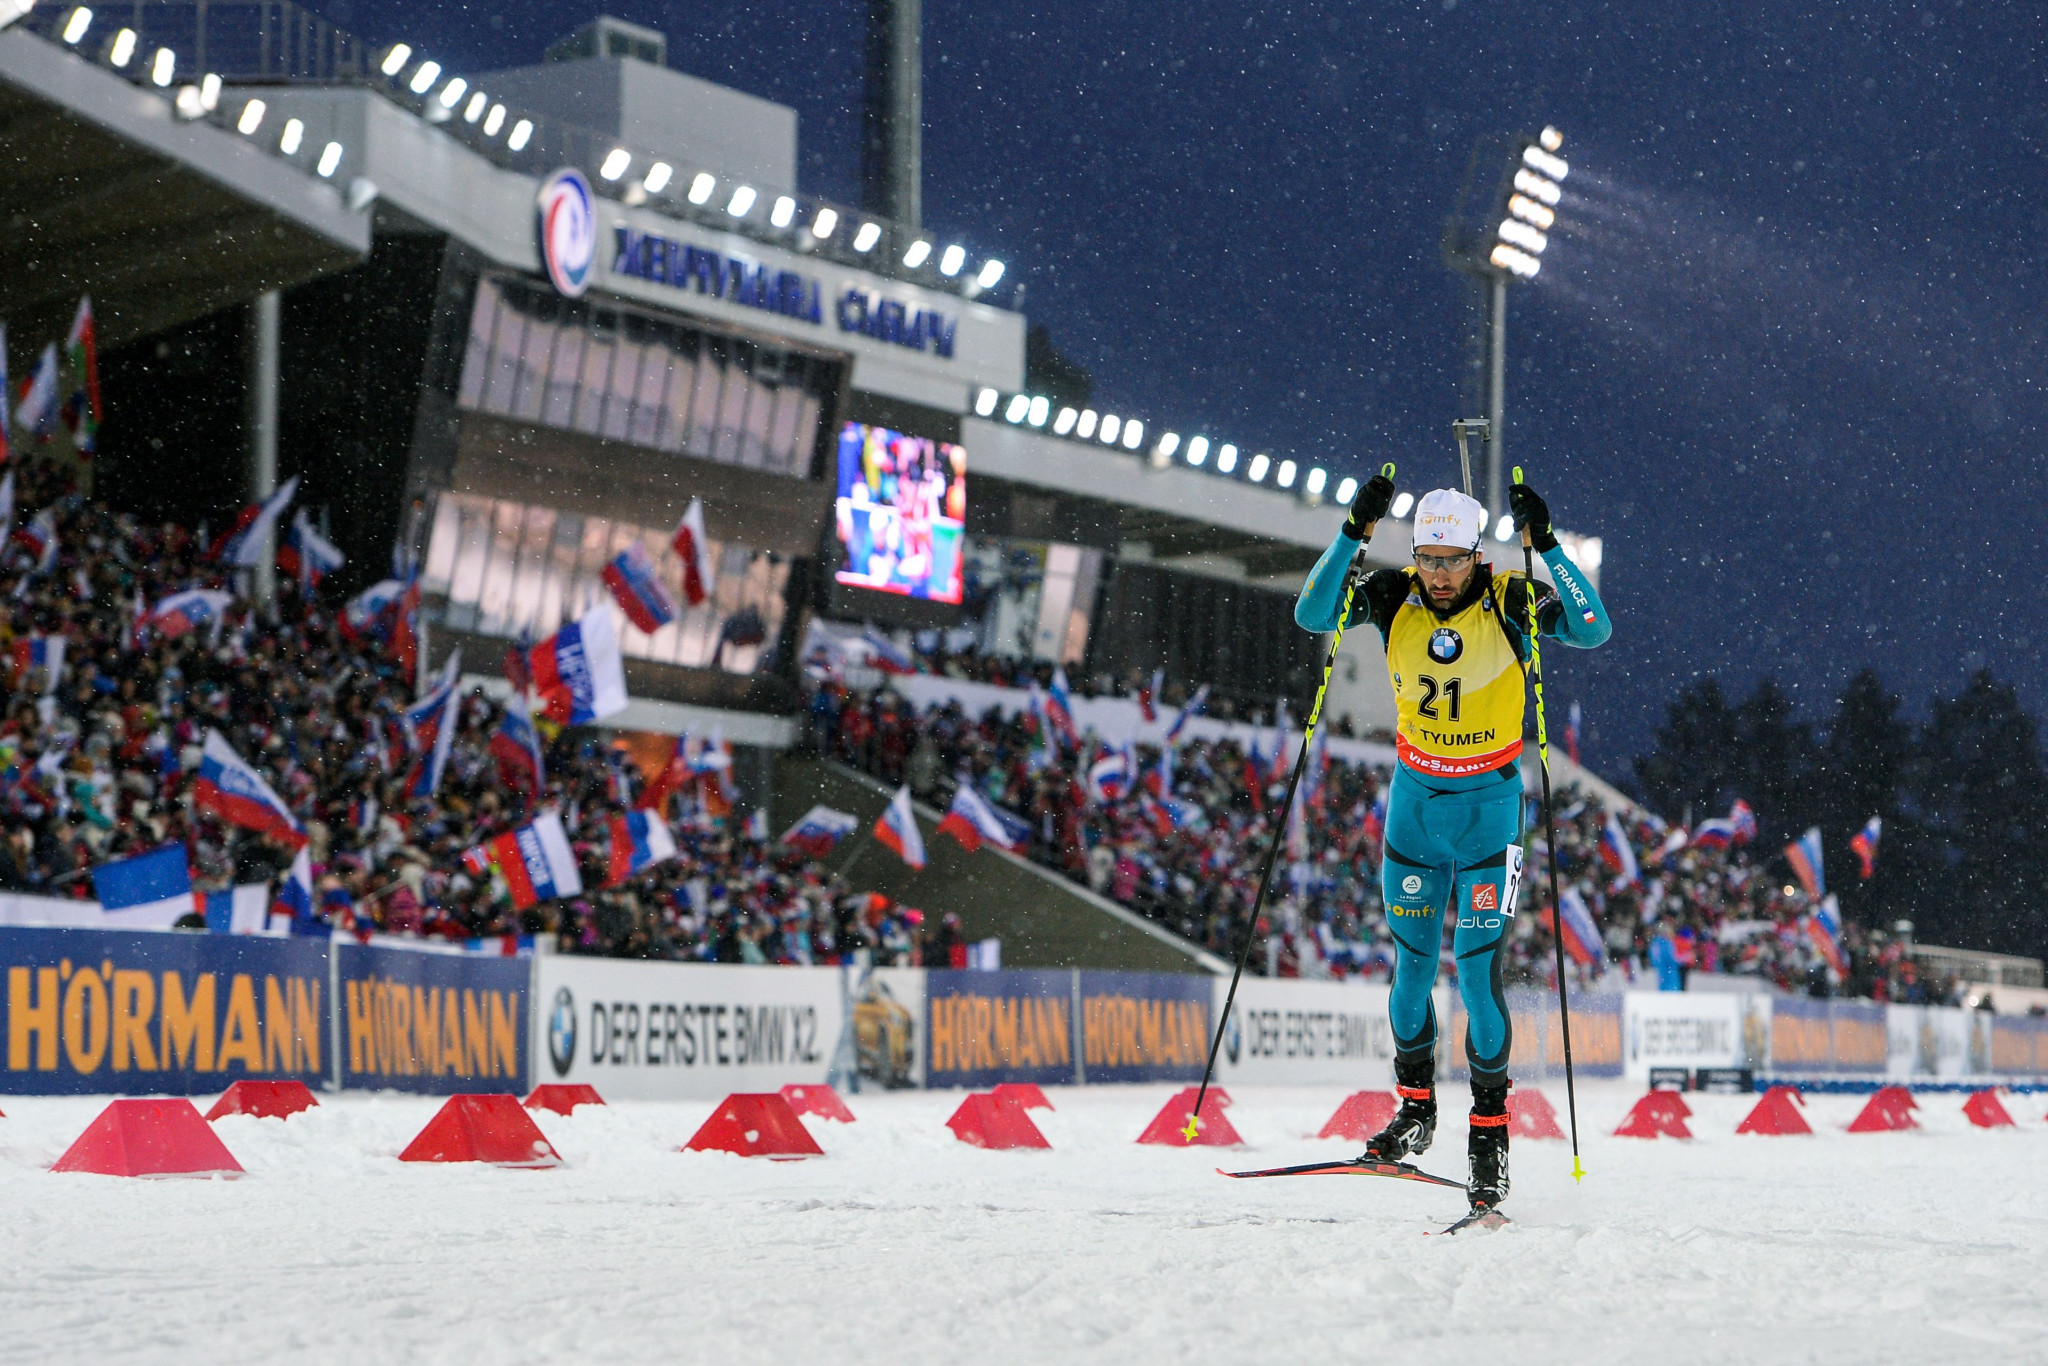 Tyumen played host to the World Cup final in March of this year ©Getty Images